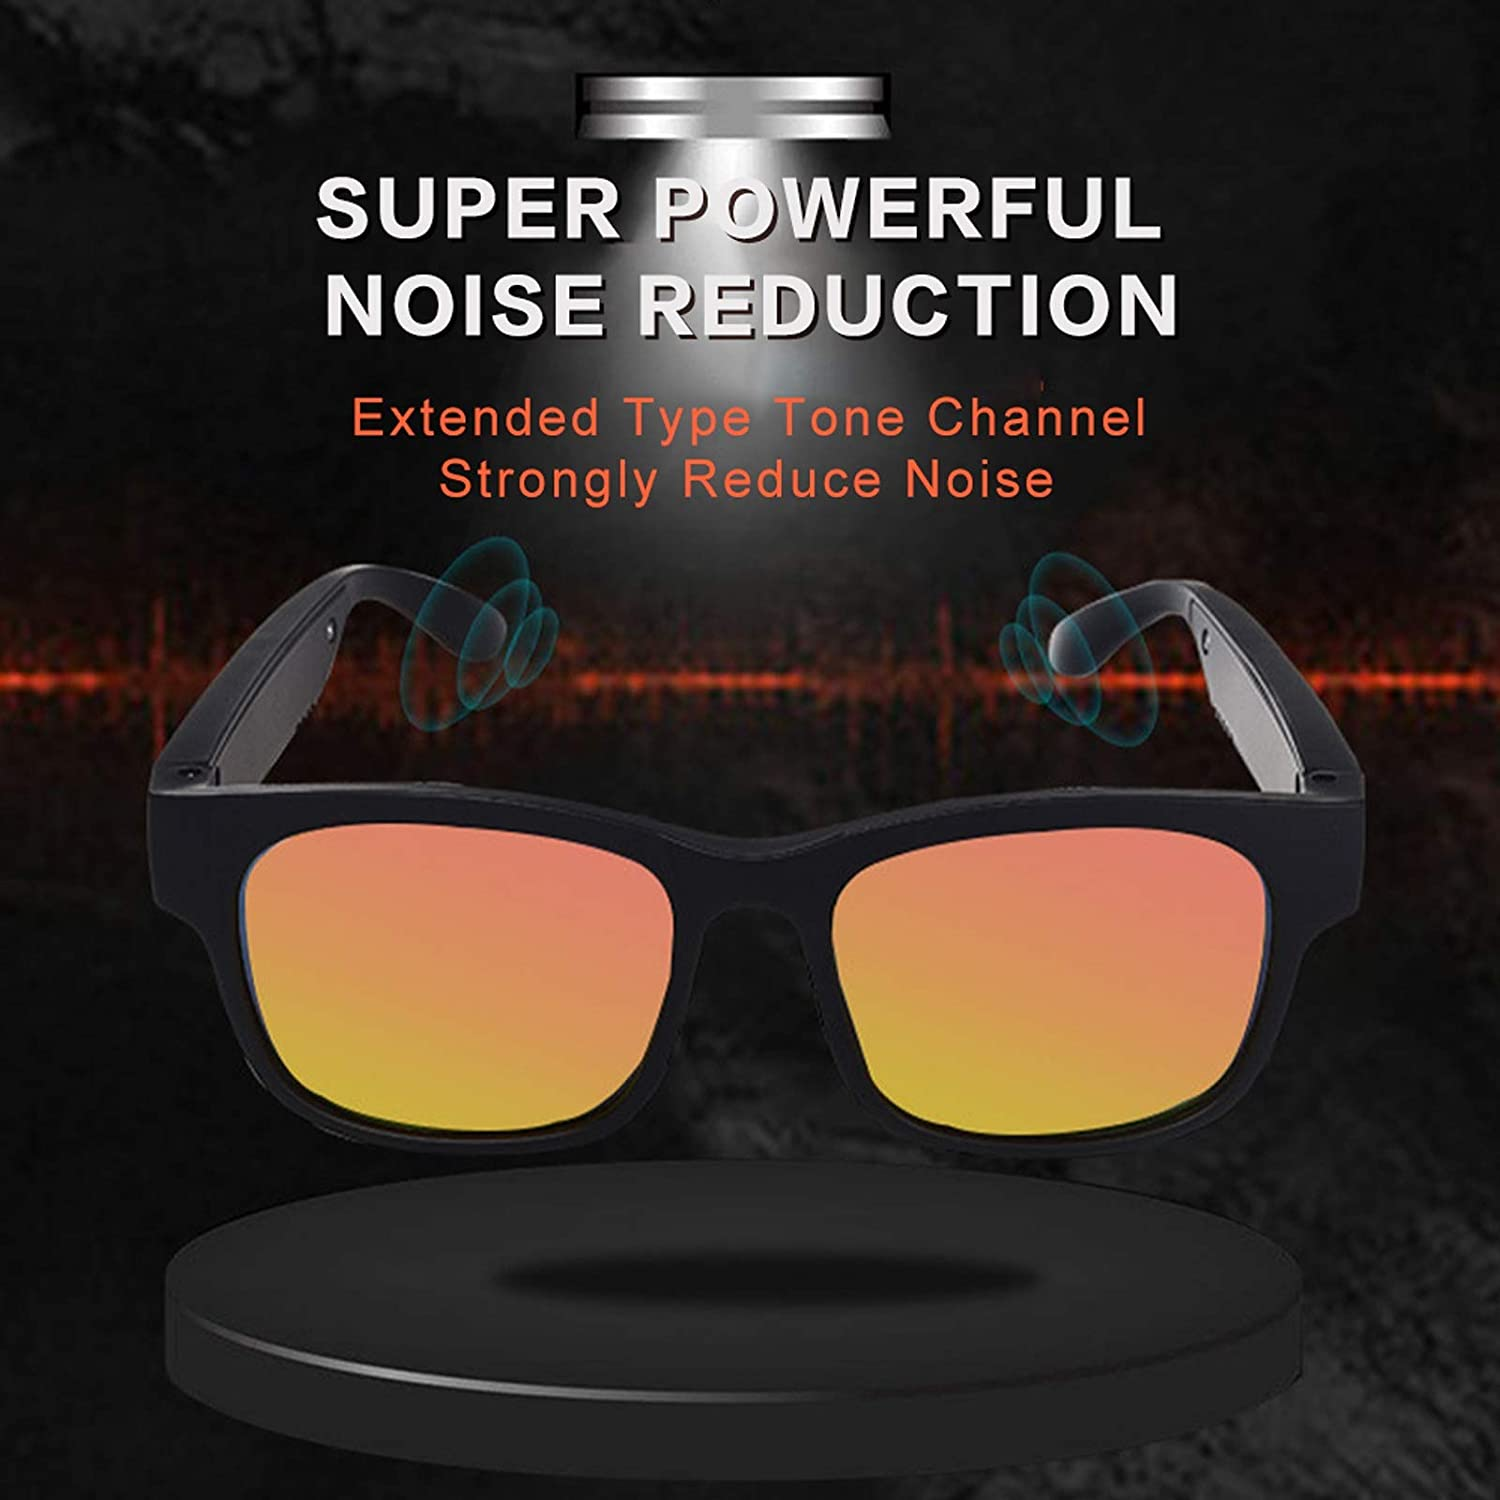 KTYXGKL Wireless Bluetooth Glasses, Smart Sports Sunglasses with Open Ear Music and Hands-Free Calling, Waterproof Intelligent Glasses Compatible with iOS/Android System for Outdoor Sports